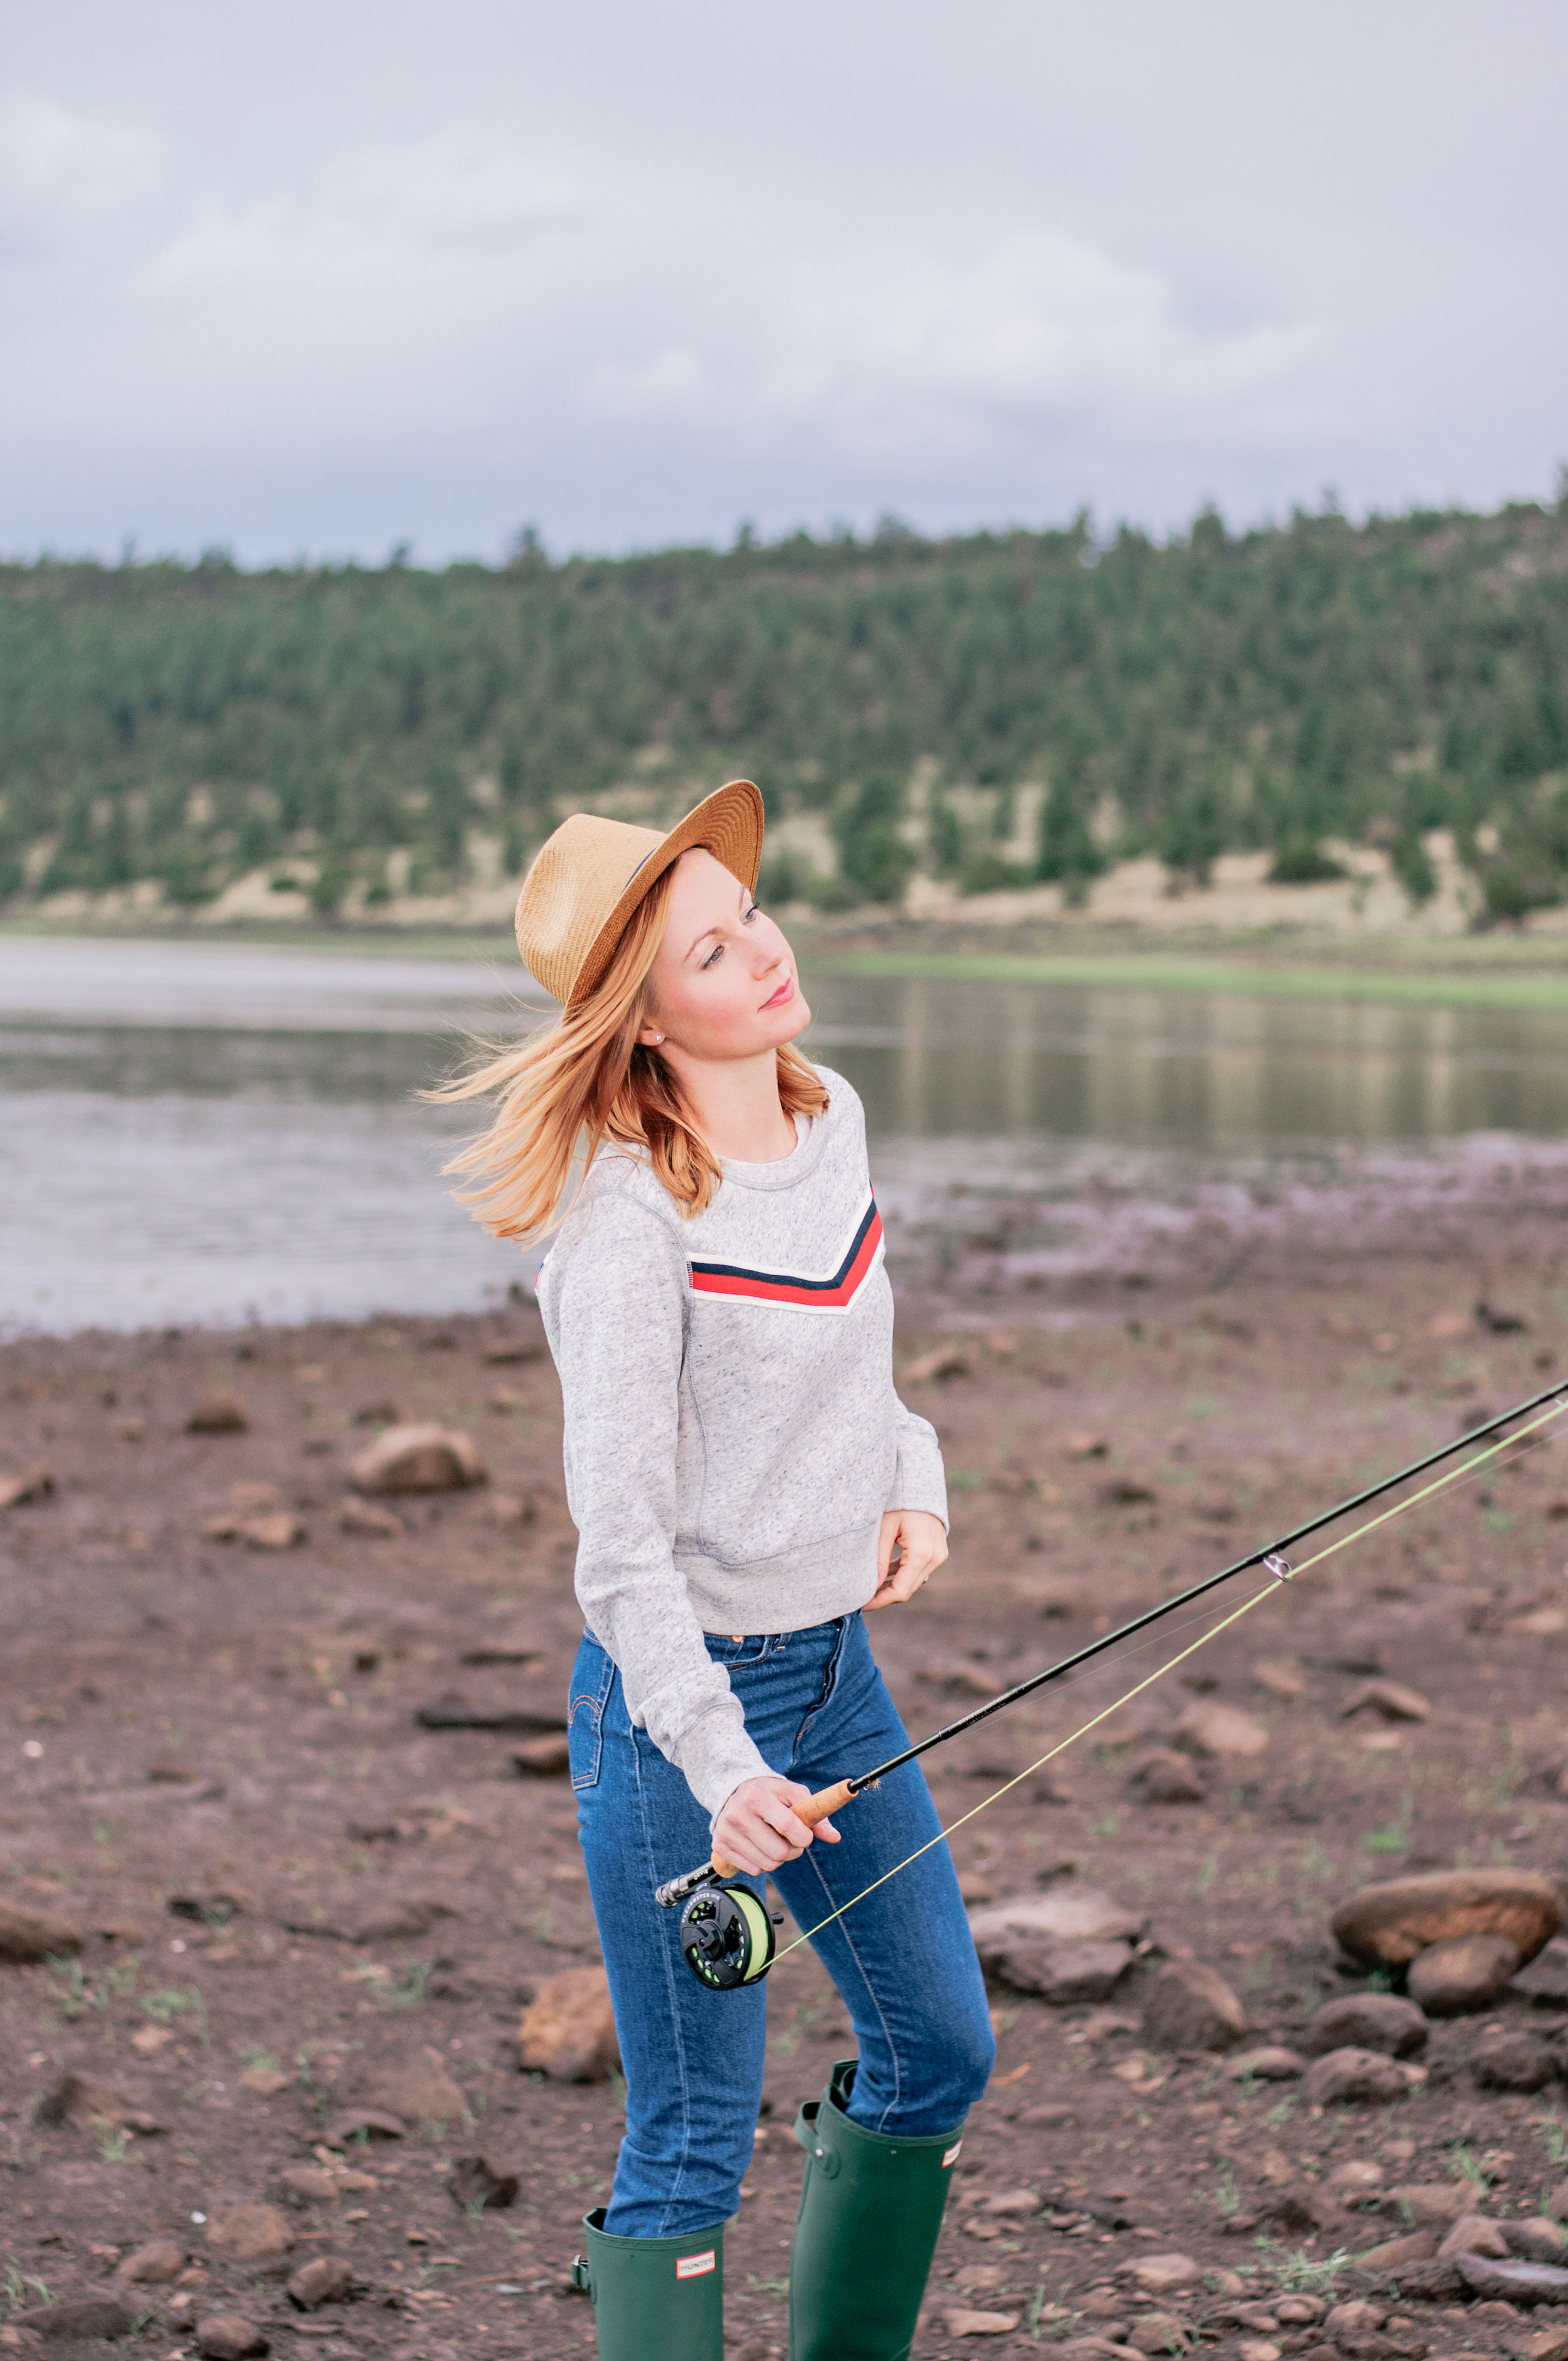 Outdoor Adventure Outfit Ideas for Women